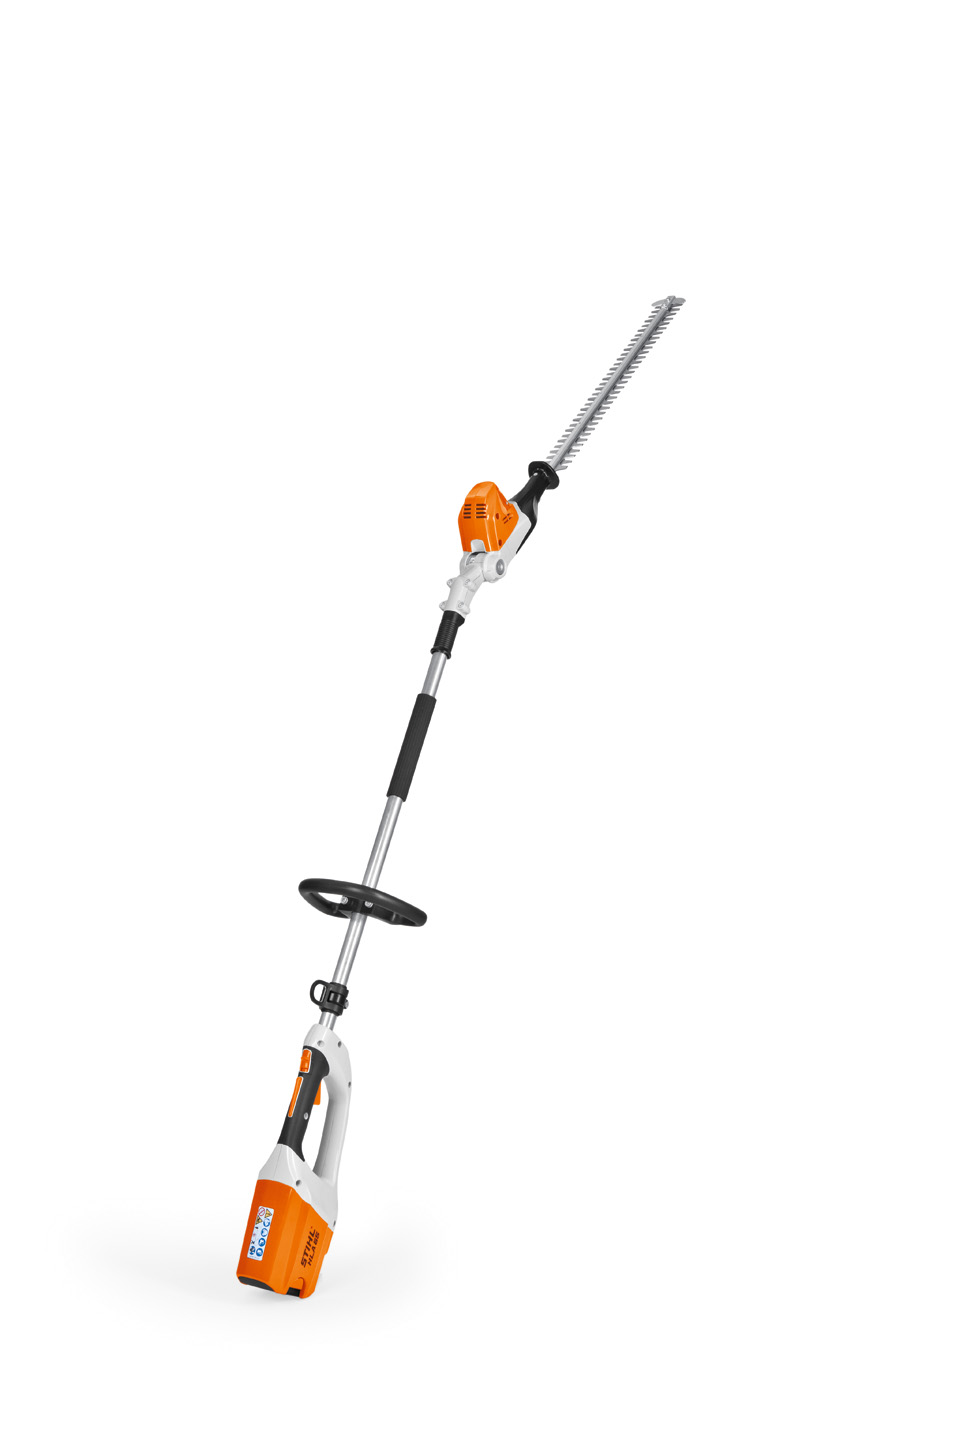 HLA 65 - CORDLESS LONG REACH HEDGE TRIMMER